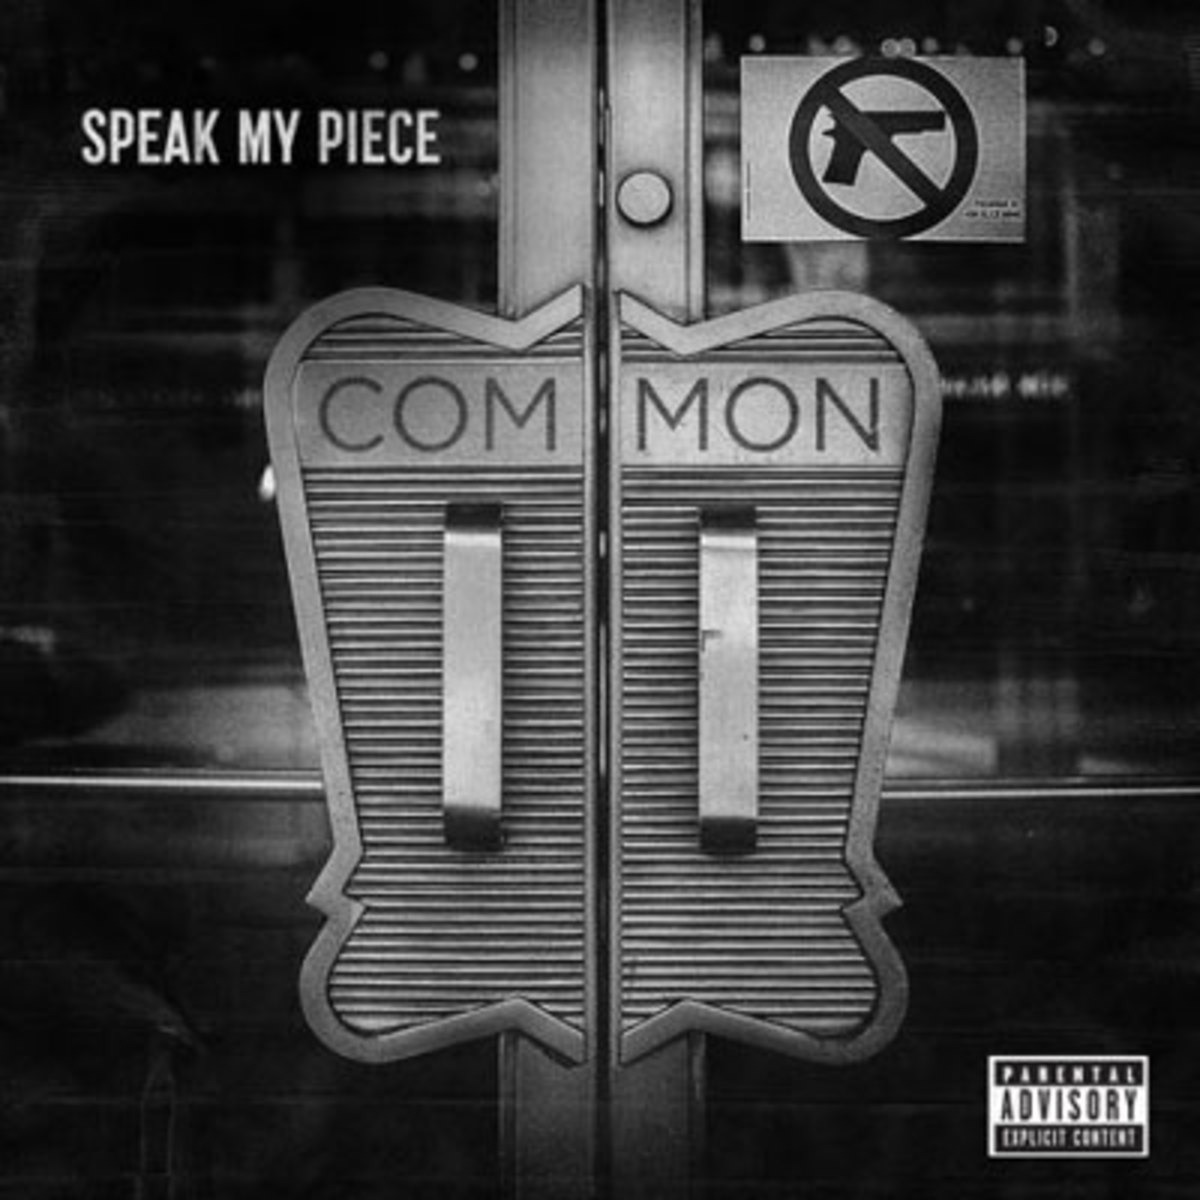 common-speakmypiece.jpg